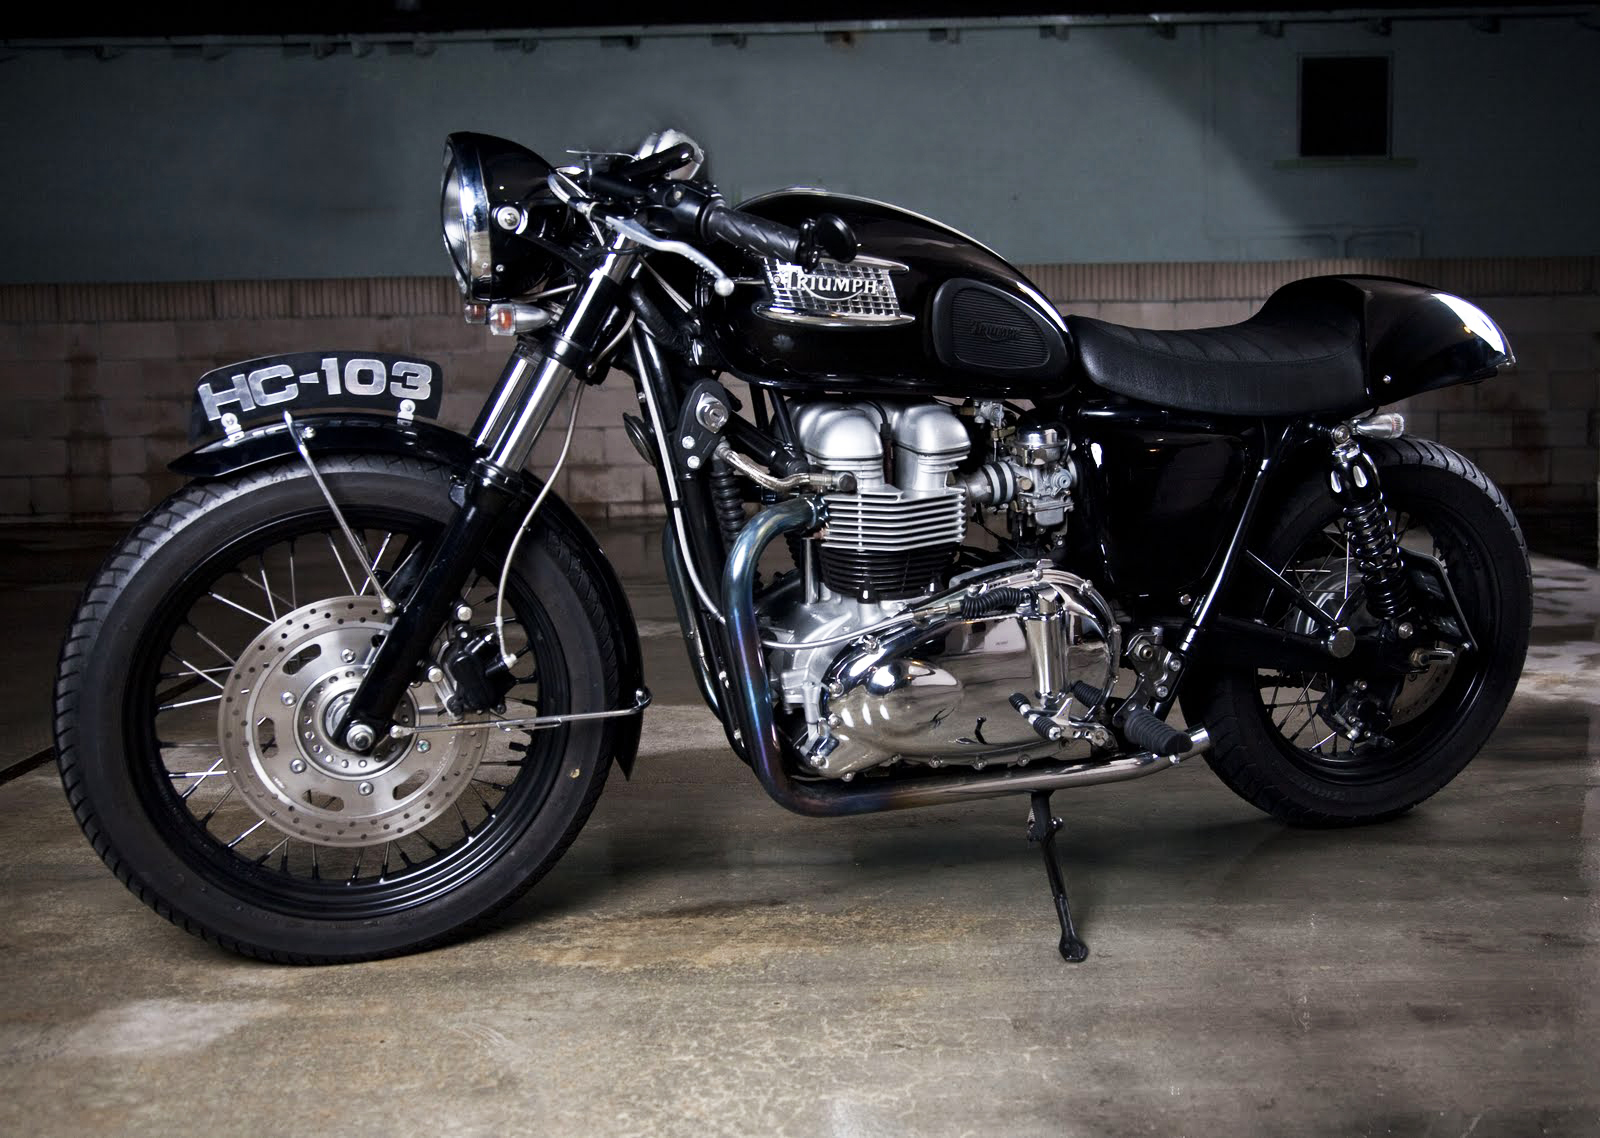 Triumph Bonneville Cafe Racer Road Race Motorsports